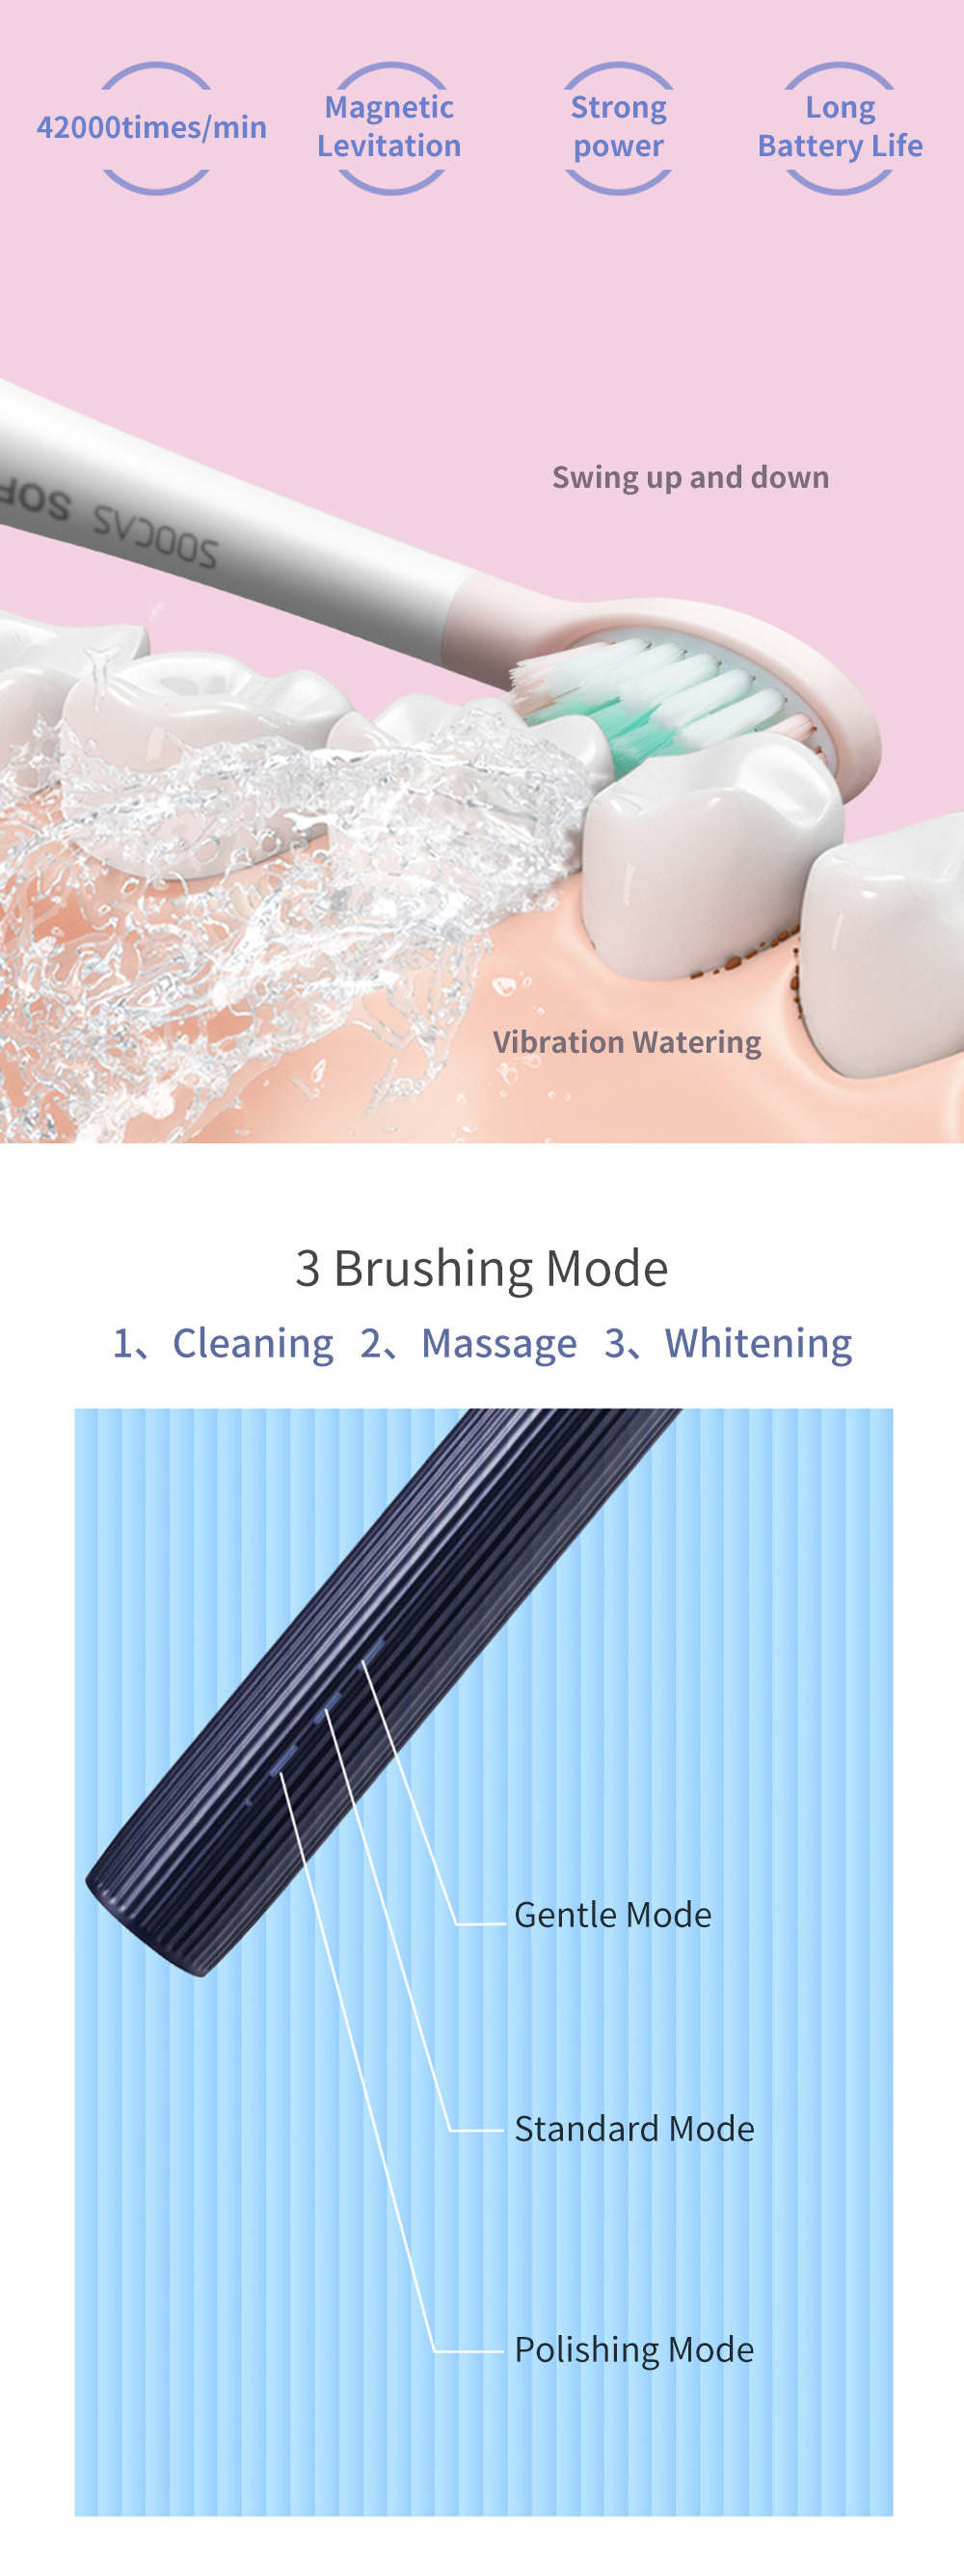 [New Release] Soocas V1 Sonic Whitening Electric Toothbrush Portable USB Type-C Charging with 2 Brush Head from Xiaomi Youpin